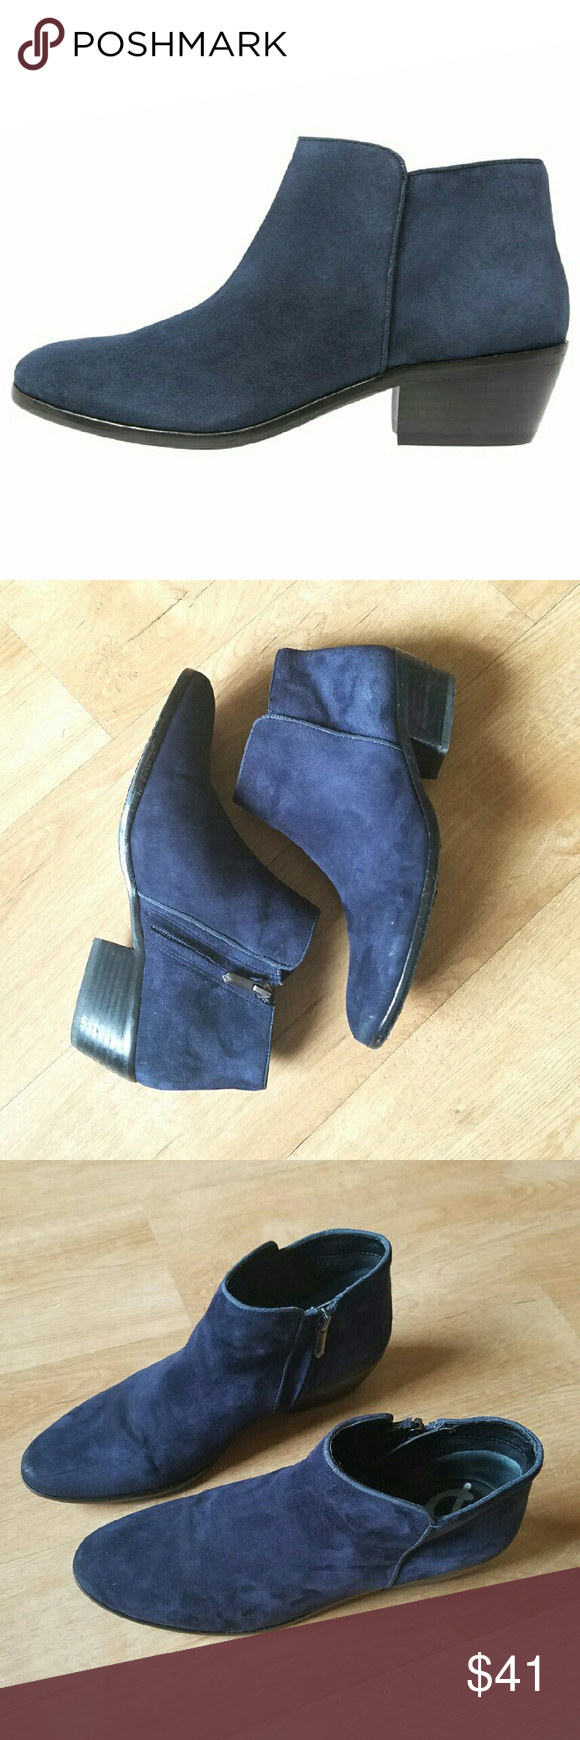 5e9c3be1f5708 Sam Edelman Petty Ankle Boots in Navy Blue Suede Sam Edelman Petty booties.  A minimalist profile and low